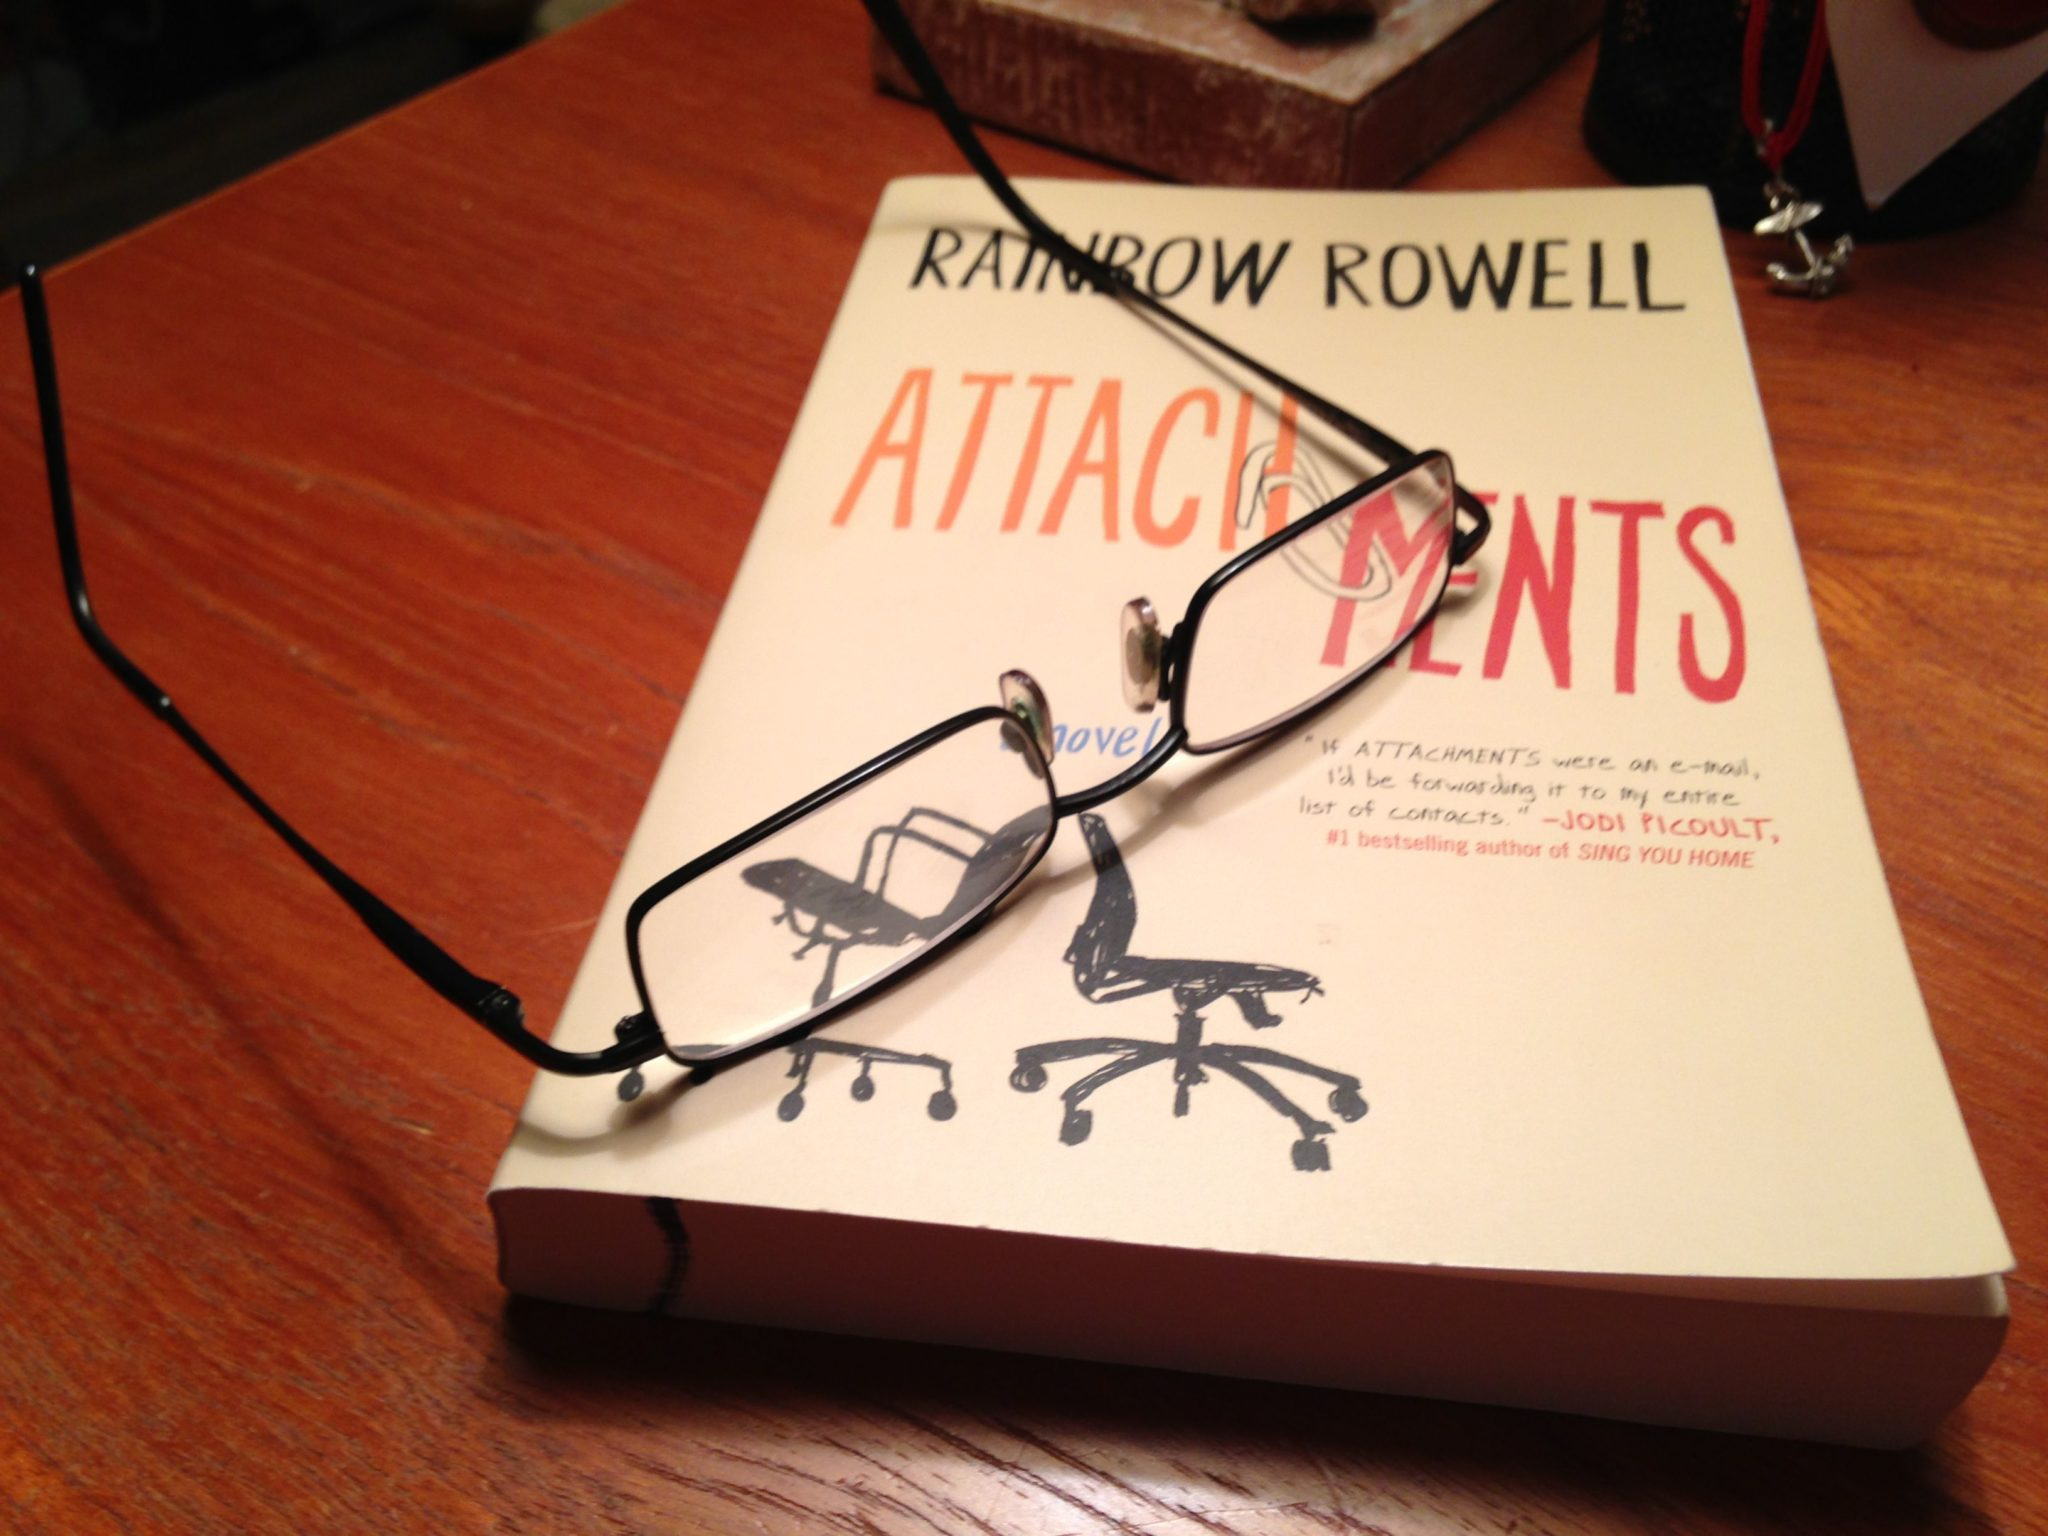 On my nightstand:  'Attachments: A novel'